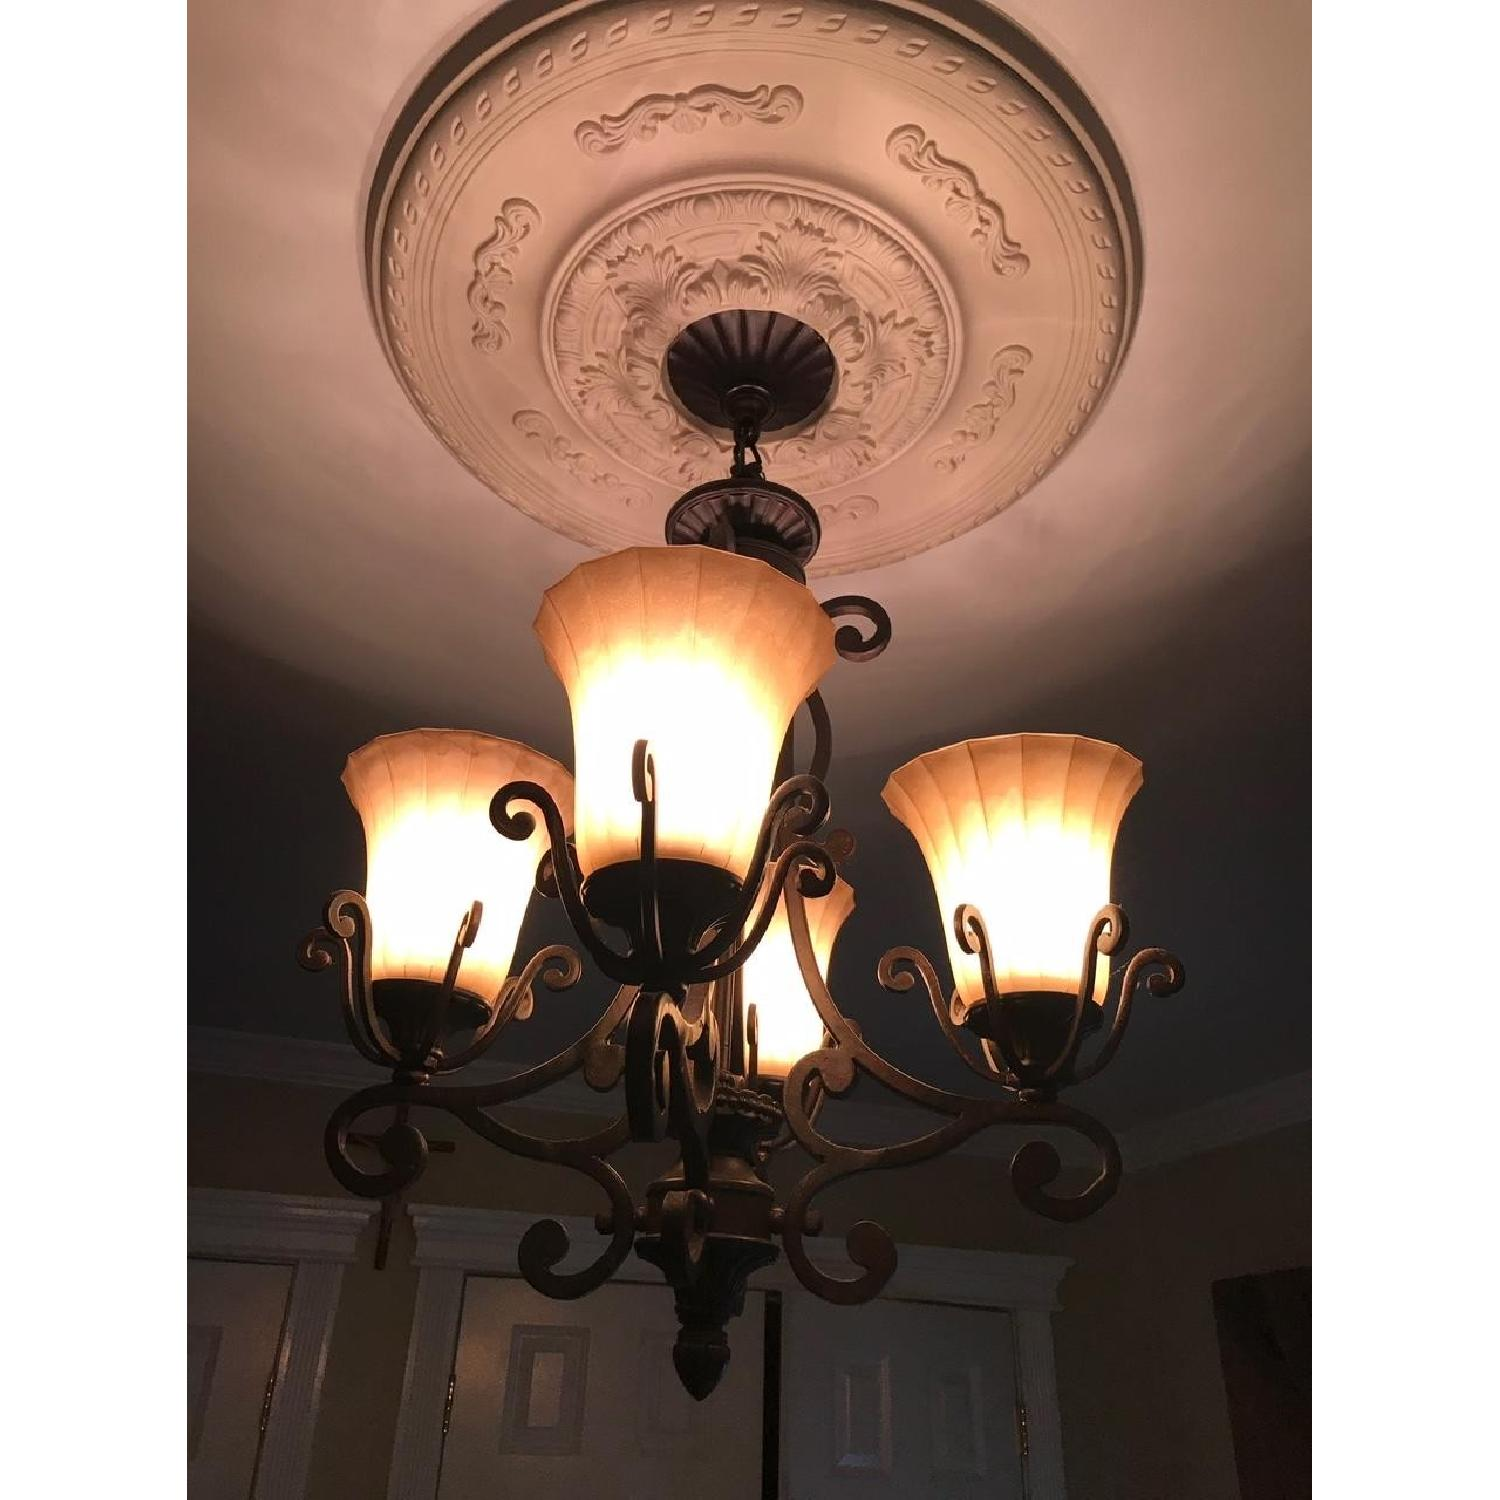 Rustic Themed 4 Light Candelabra Chandelier-0